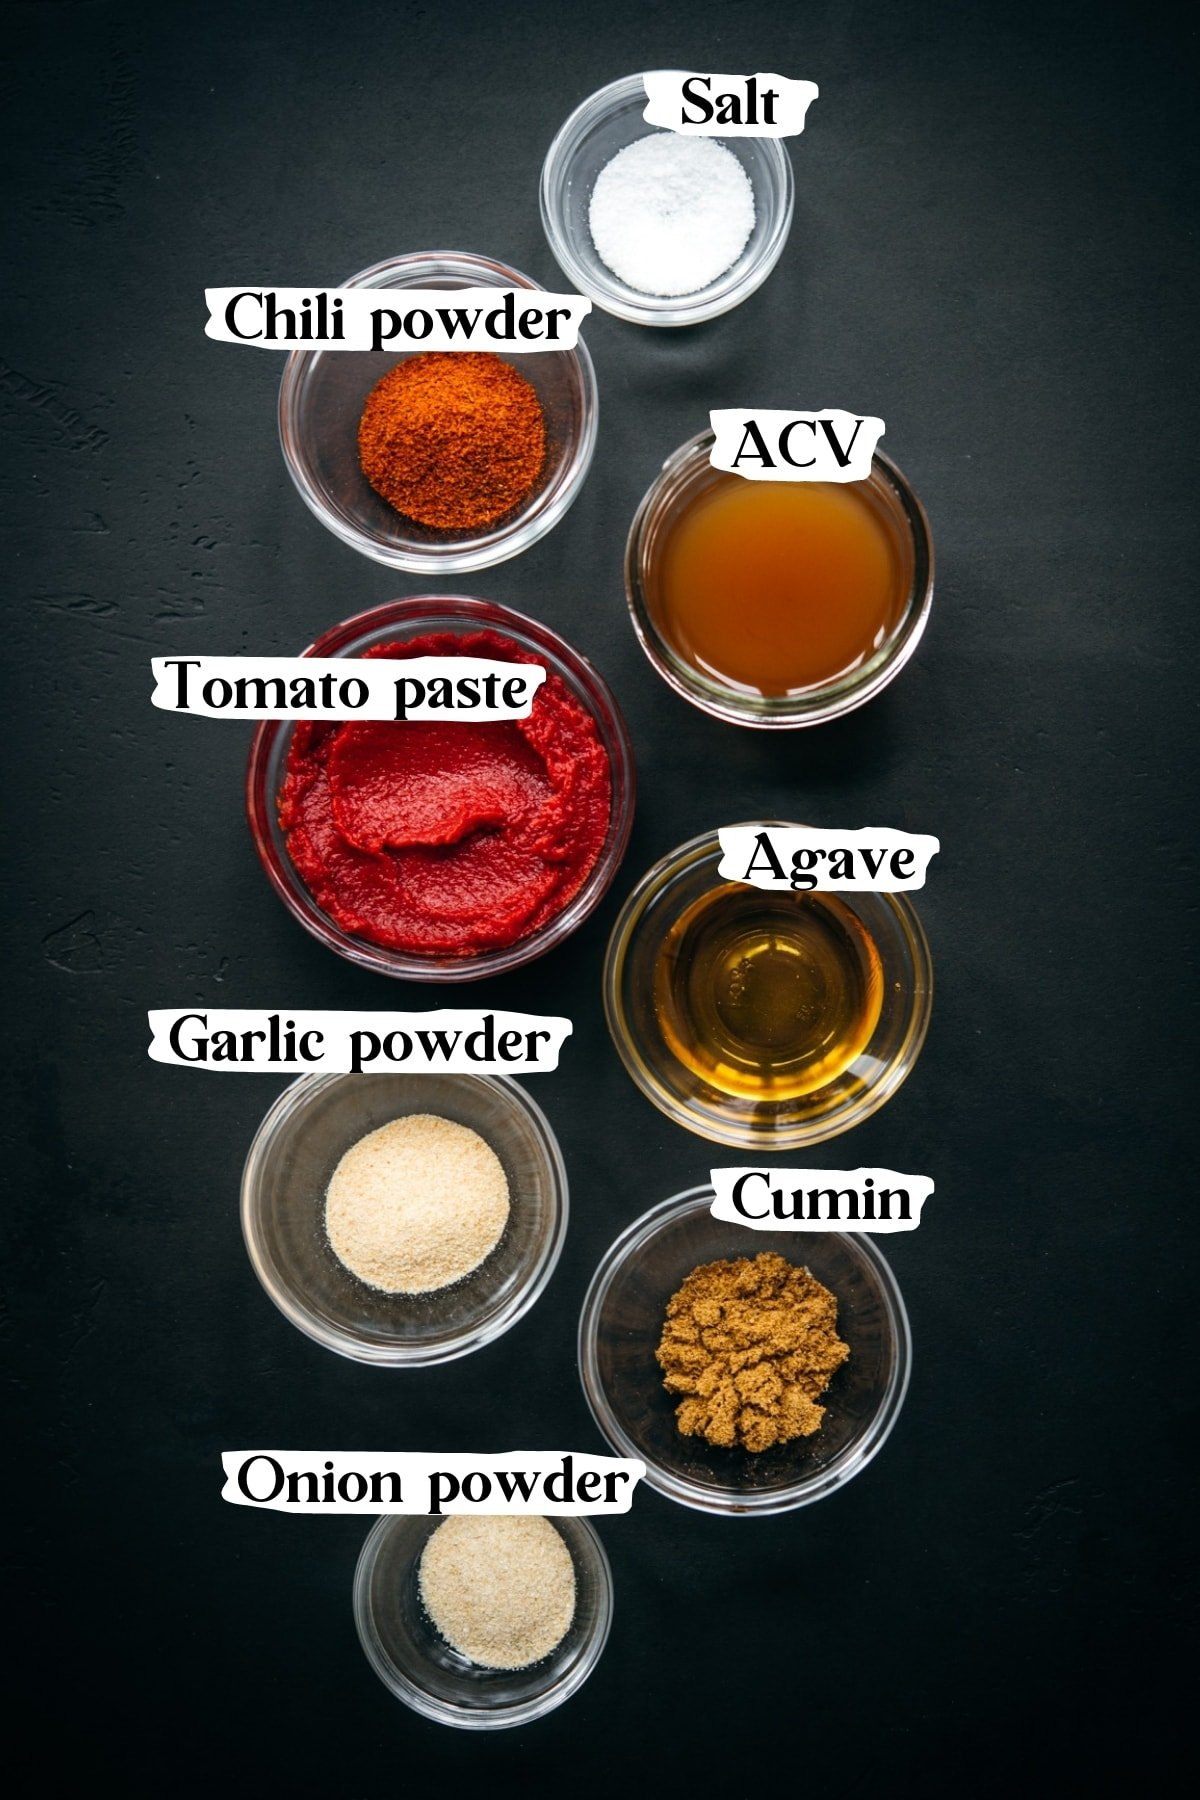 overhead view of ingredients and spices for homemade taco sauce in small glass bowls.